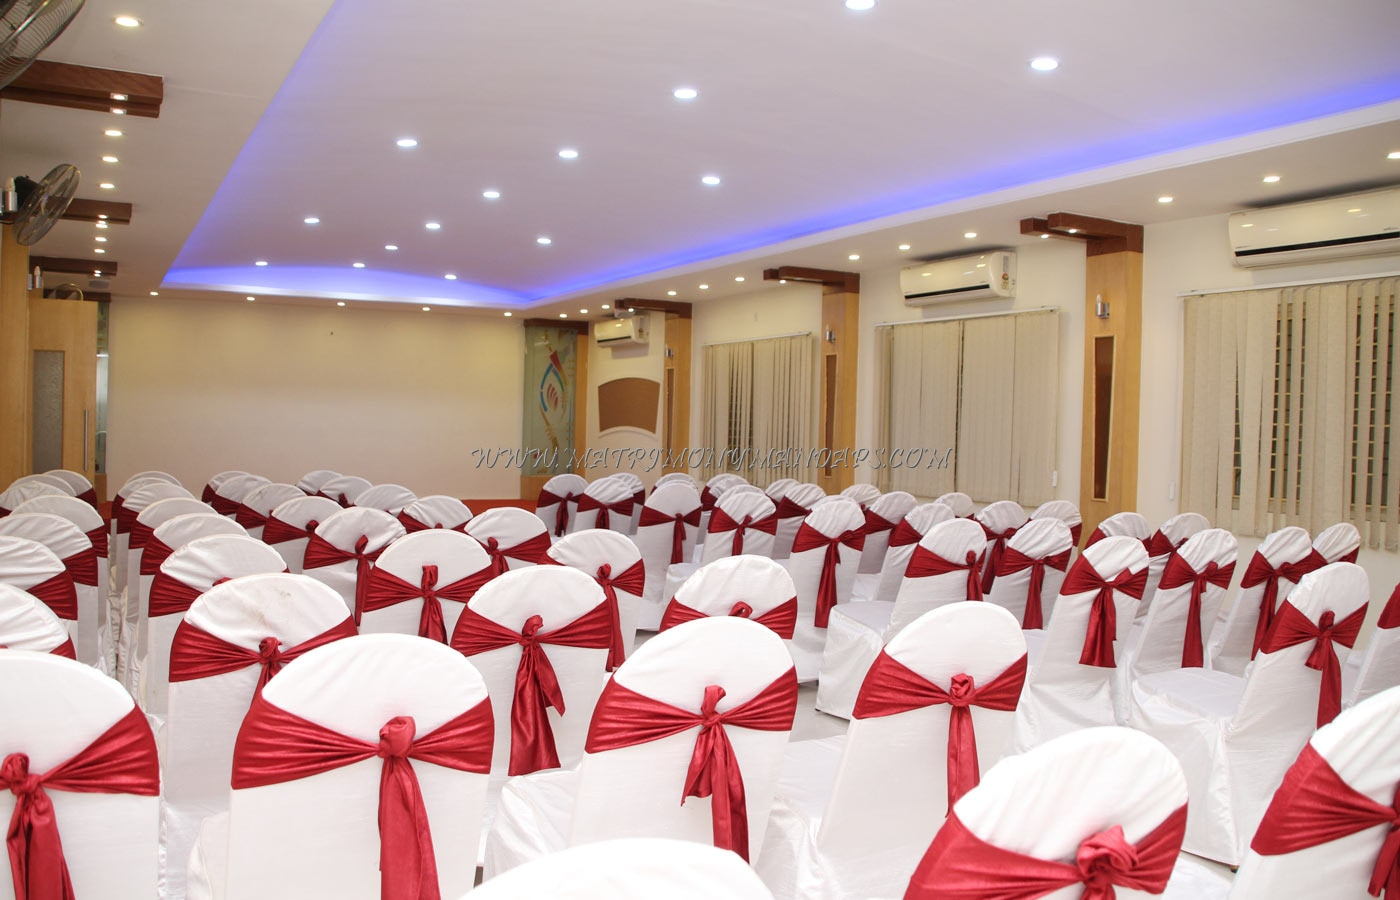 Find the availability of the Anand Sagar Inn (A/C) in Basavanagudi, Bangalore and avail special offers